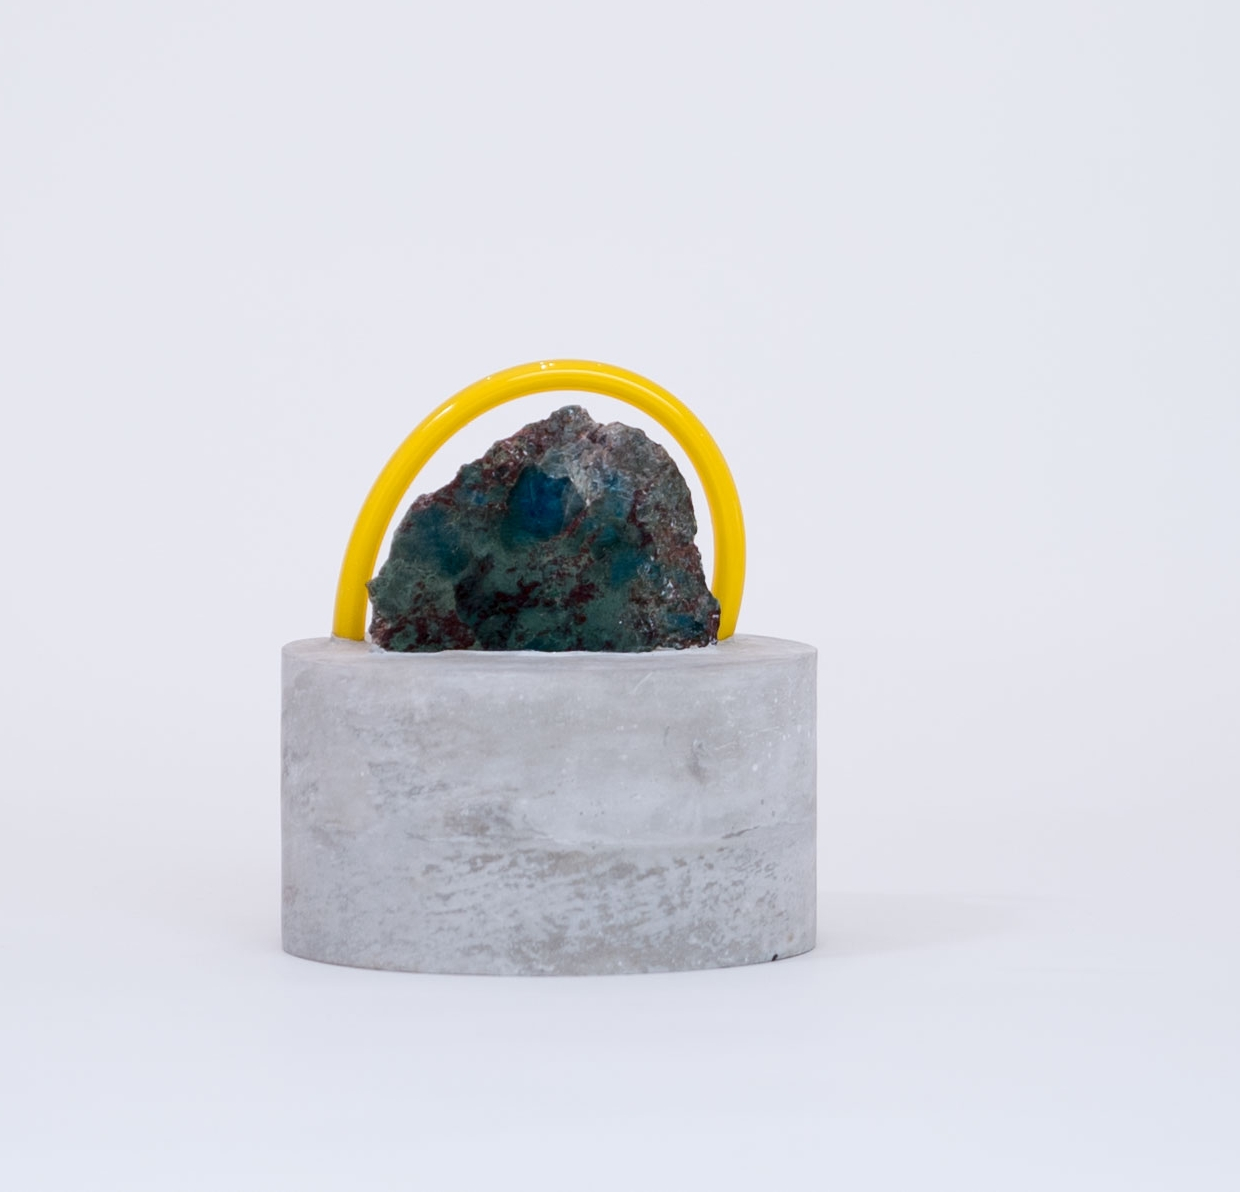 ESTHER RUIZ - UntitledCement, glass, green marble5 x 5 x 7